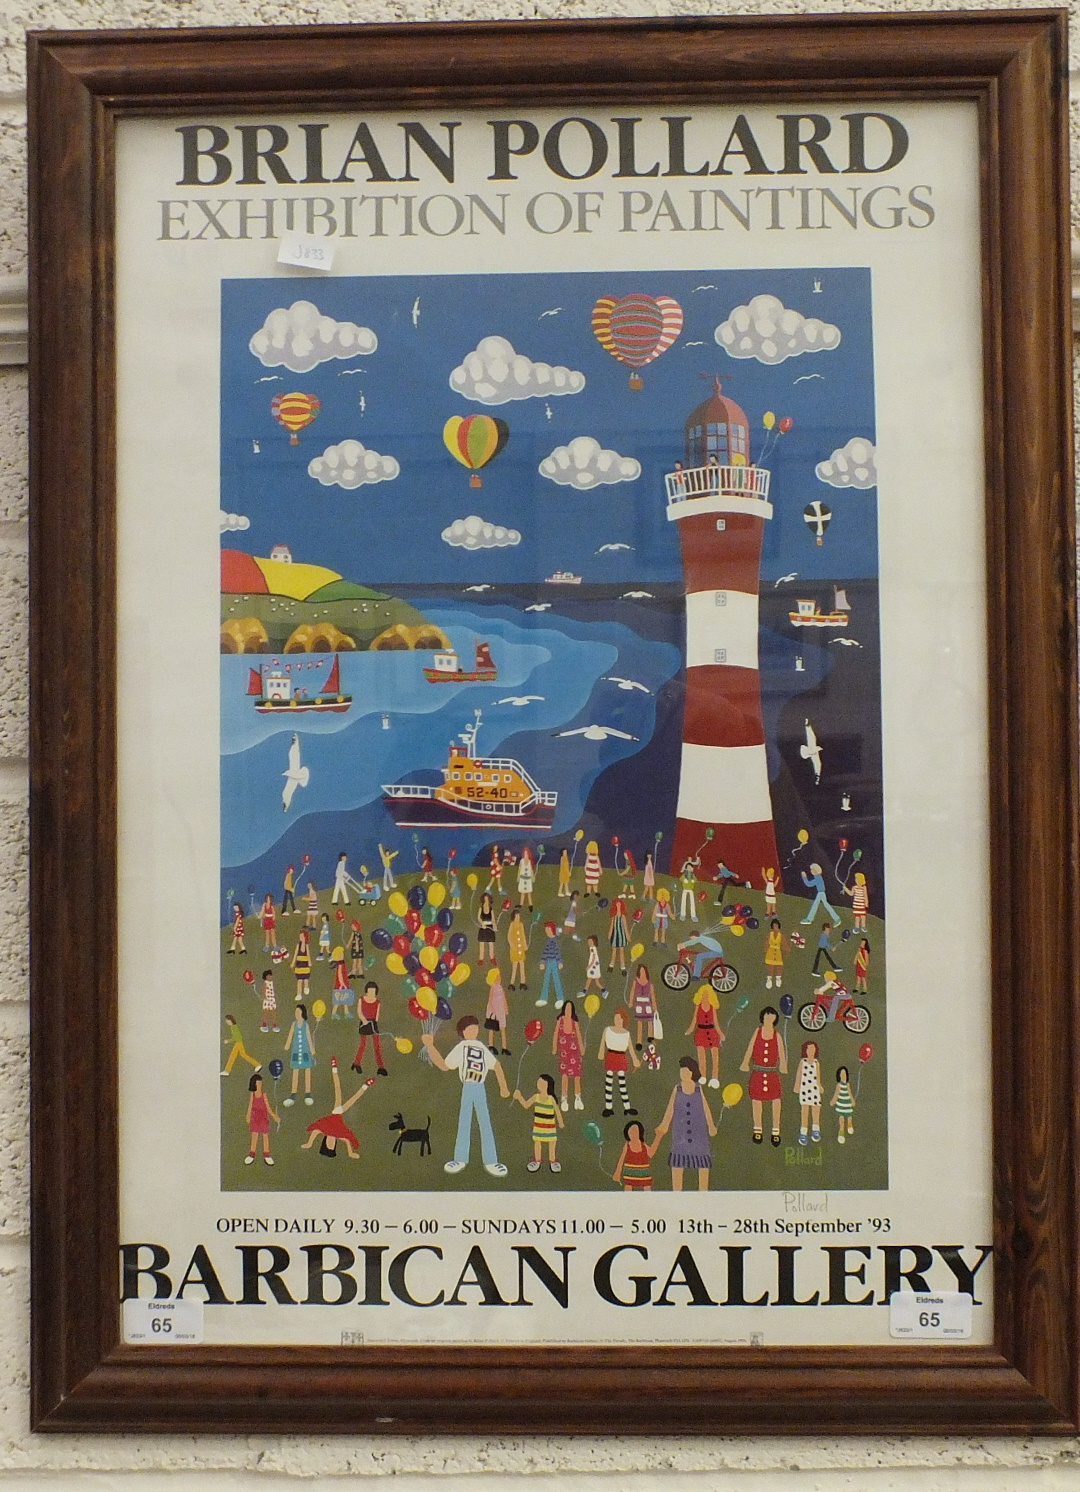 Lot 65 - After Brian Pollard, a poster for Exhibition of Paintings at the Barbican Gallery 13th-28th